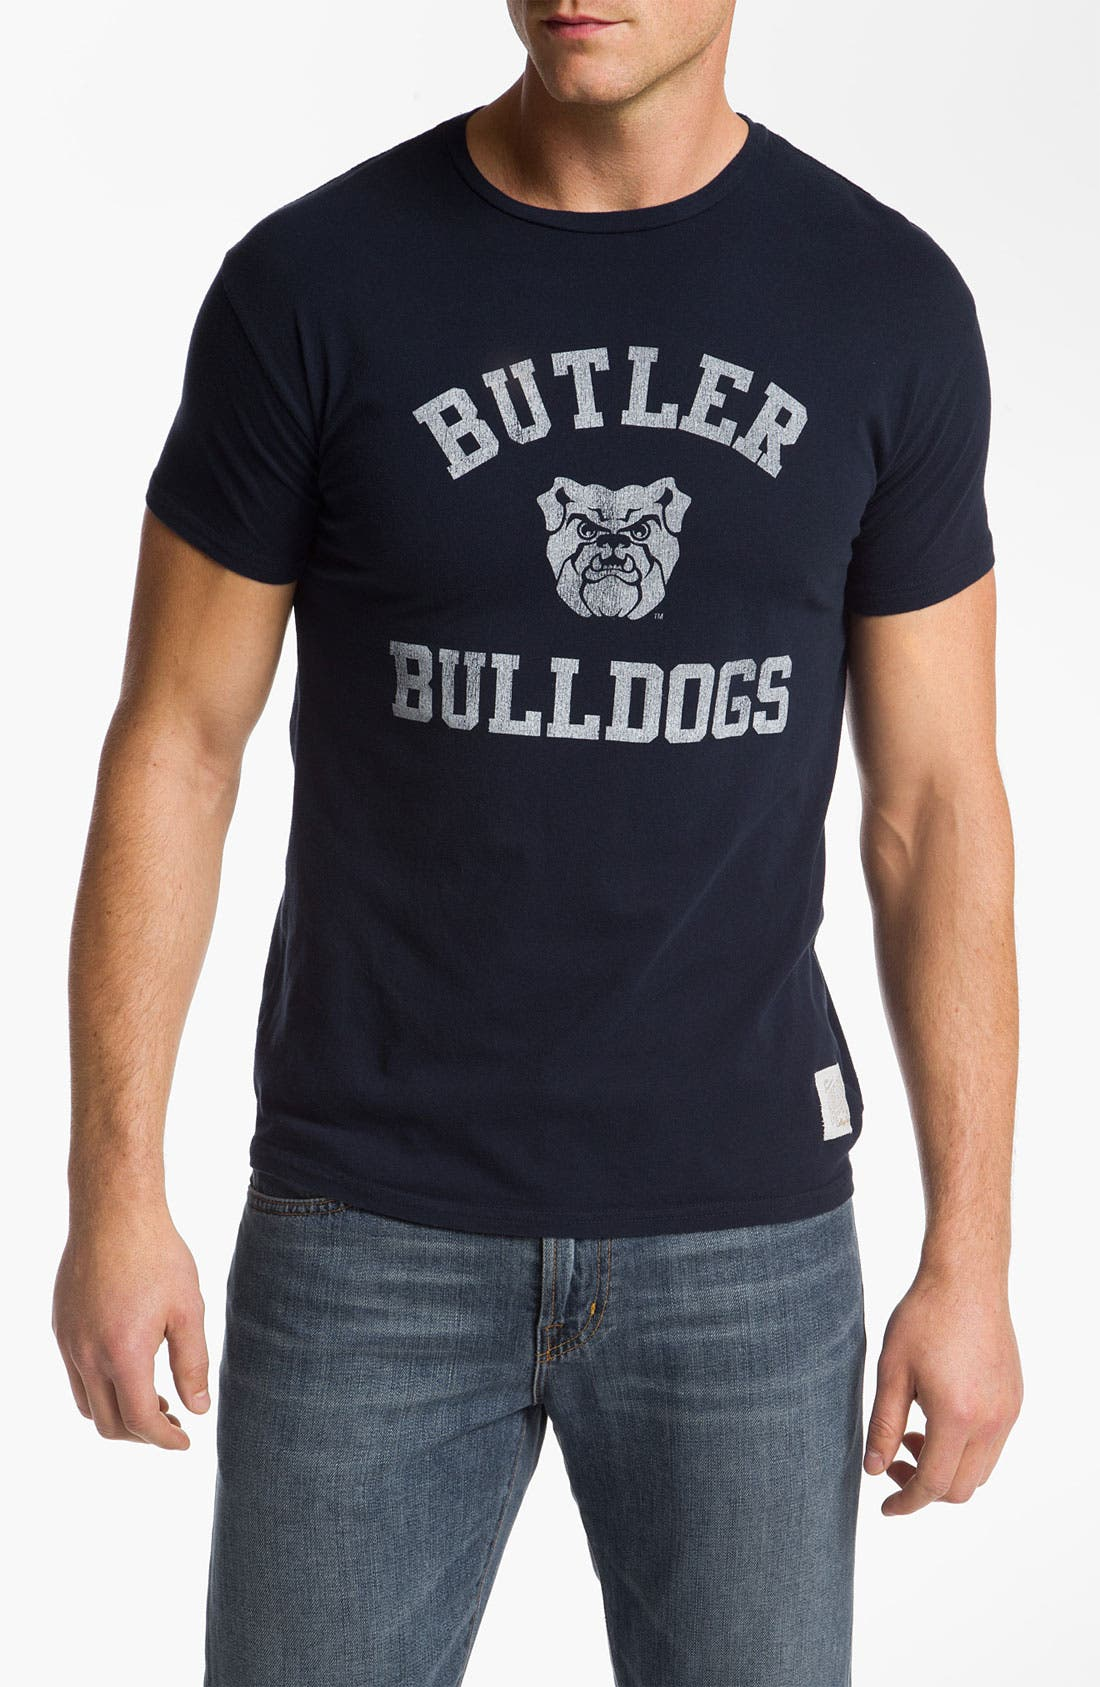 Alternate Image 1 Selected - The Original Retro Brand 'Butler Bulldogs' T-Shirt